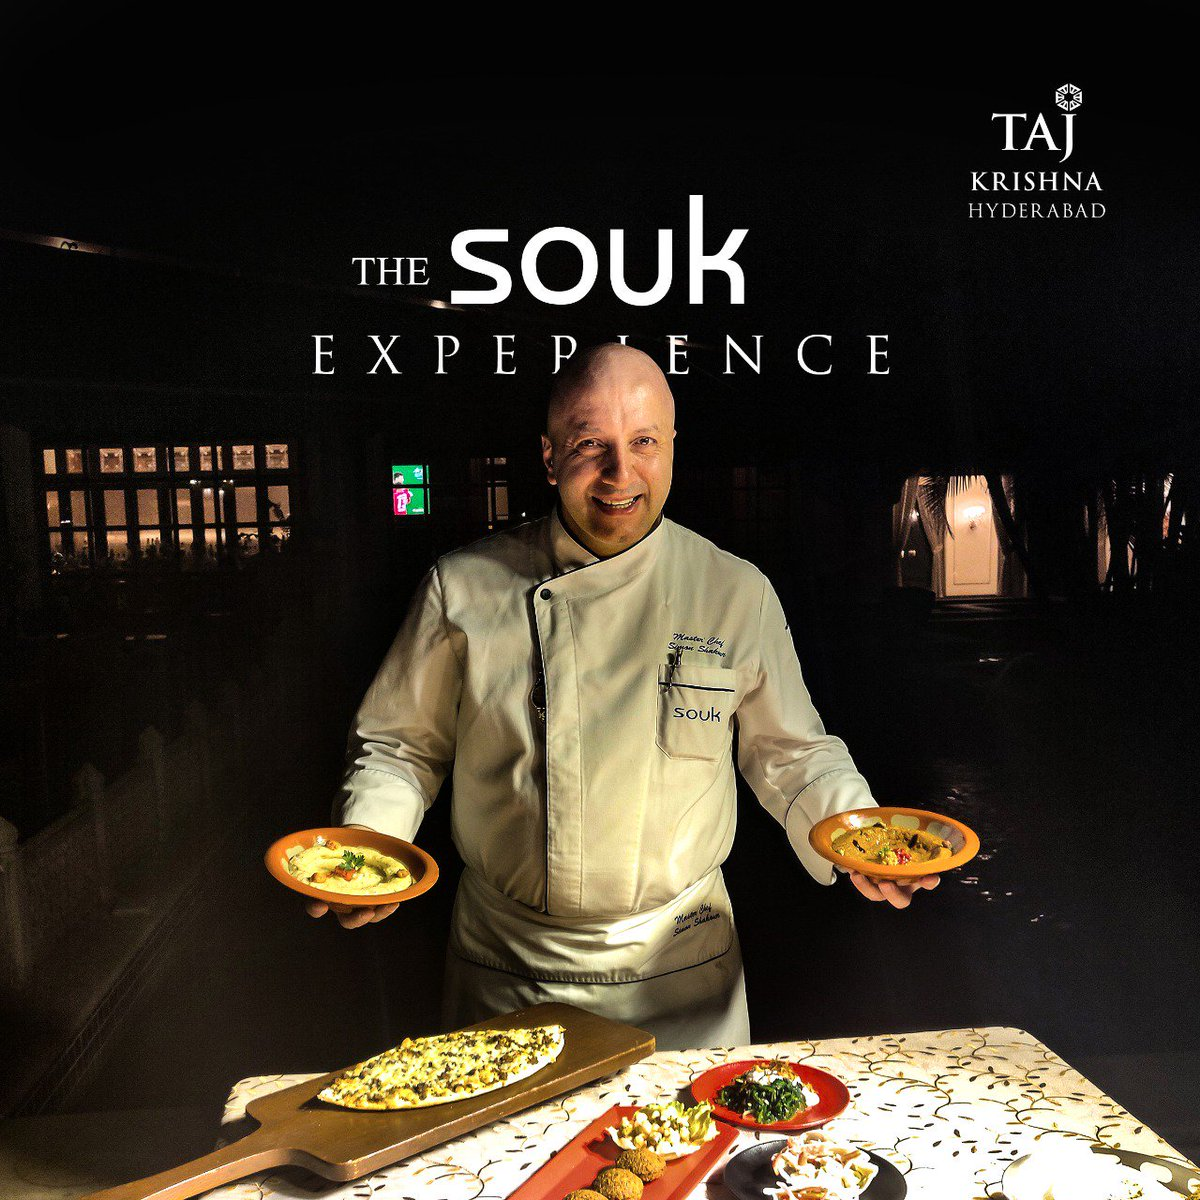 The Souk Experience!  Rich Eastern Mediterranean experience of the @tajmahalmumbai and @tajbengal is now at @tajkrishnahyd  4th to 10th March  Encounters  For reservations: 040 6629 3326  #TajKrishnaHyderabad #tajkrishnahotel #TajMahalPalace #Souk #TheSoukExperience #encounters